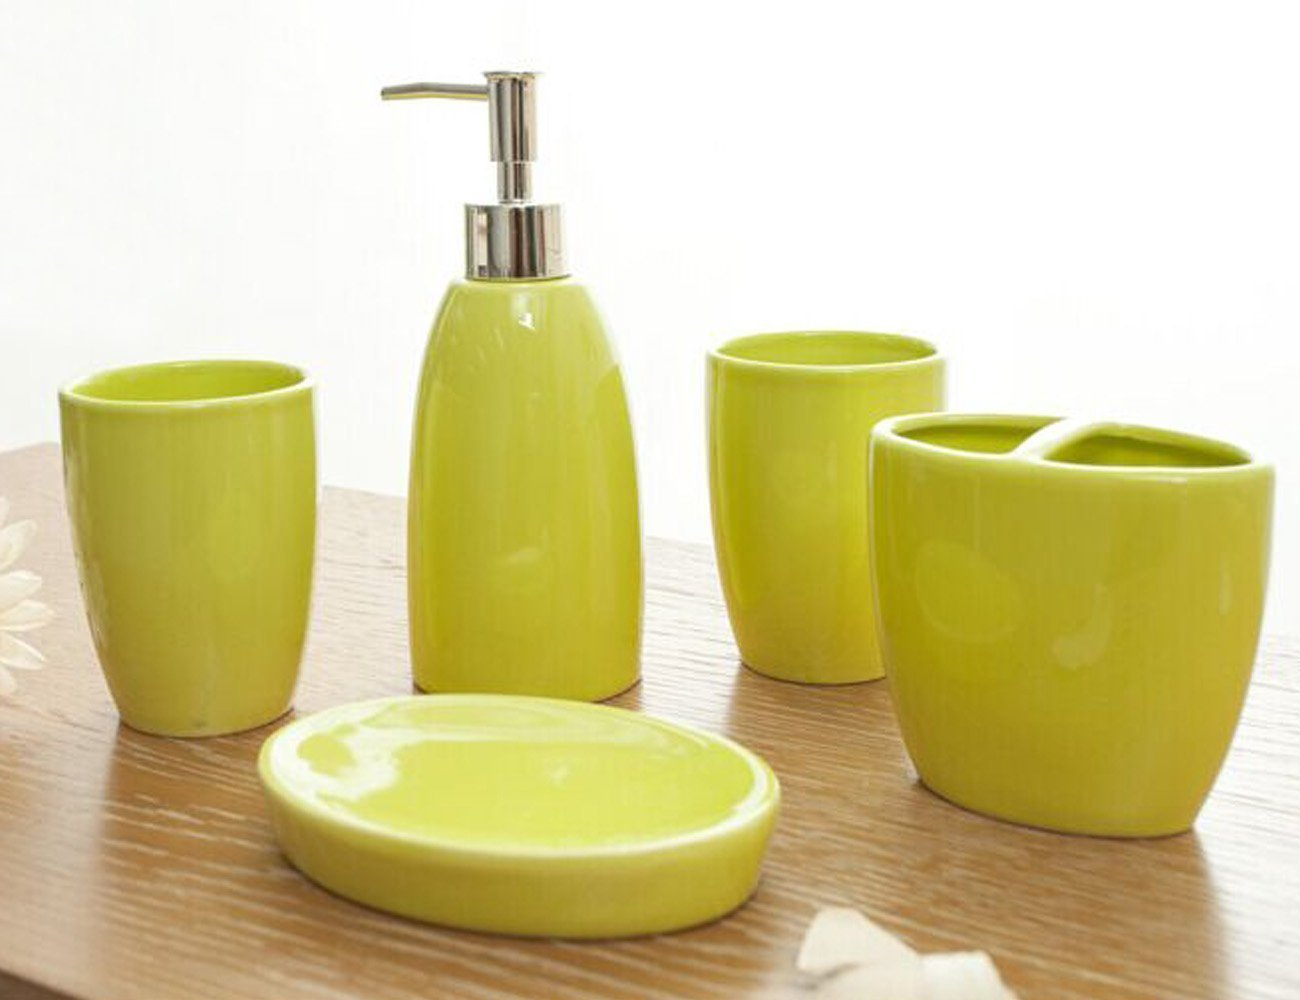 LOHOME Bathroom Accessory Set, Simple Ceramic Soap Dish, Soap Dispenser, Toothbrush Holder & Tumbler Bathroom Set (Yellow-Green)